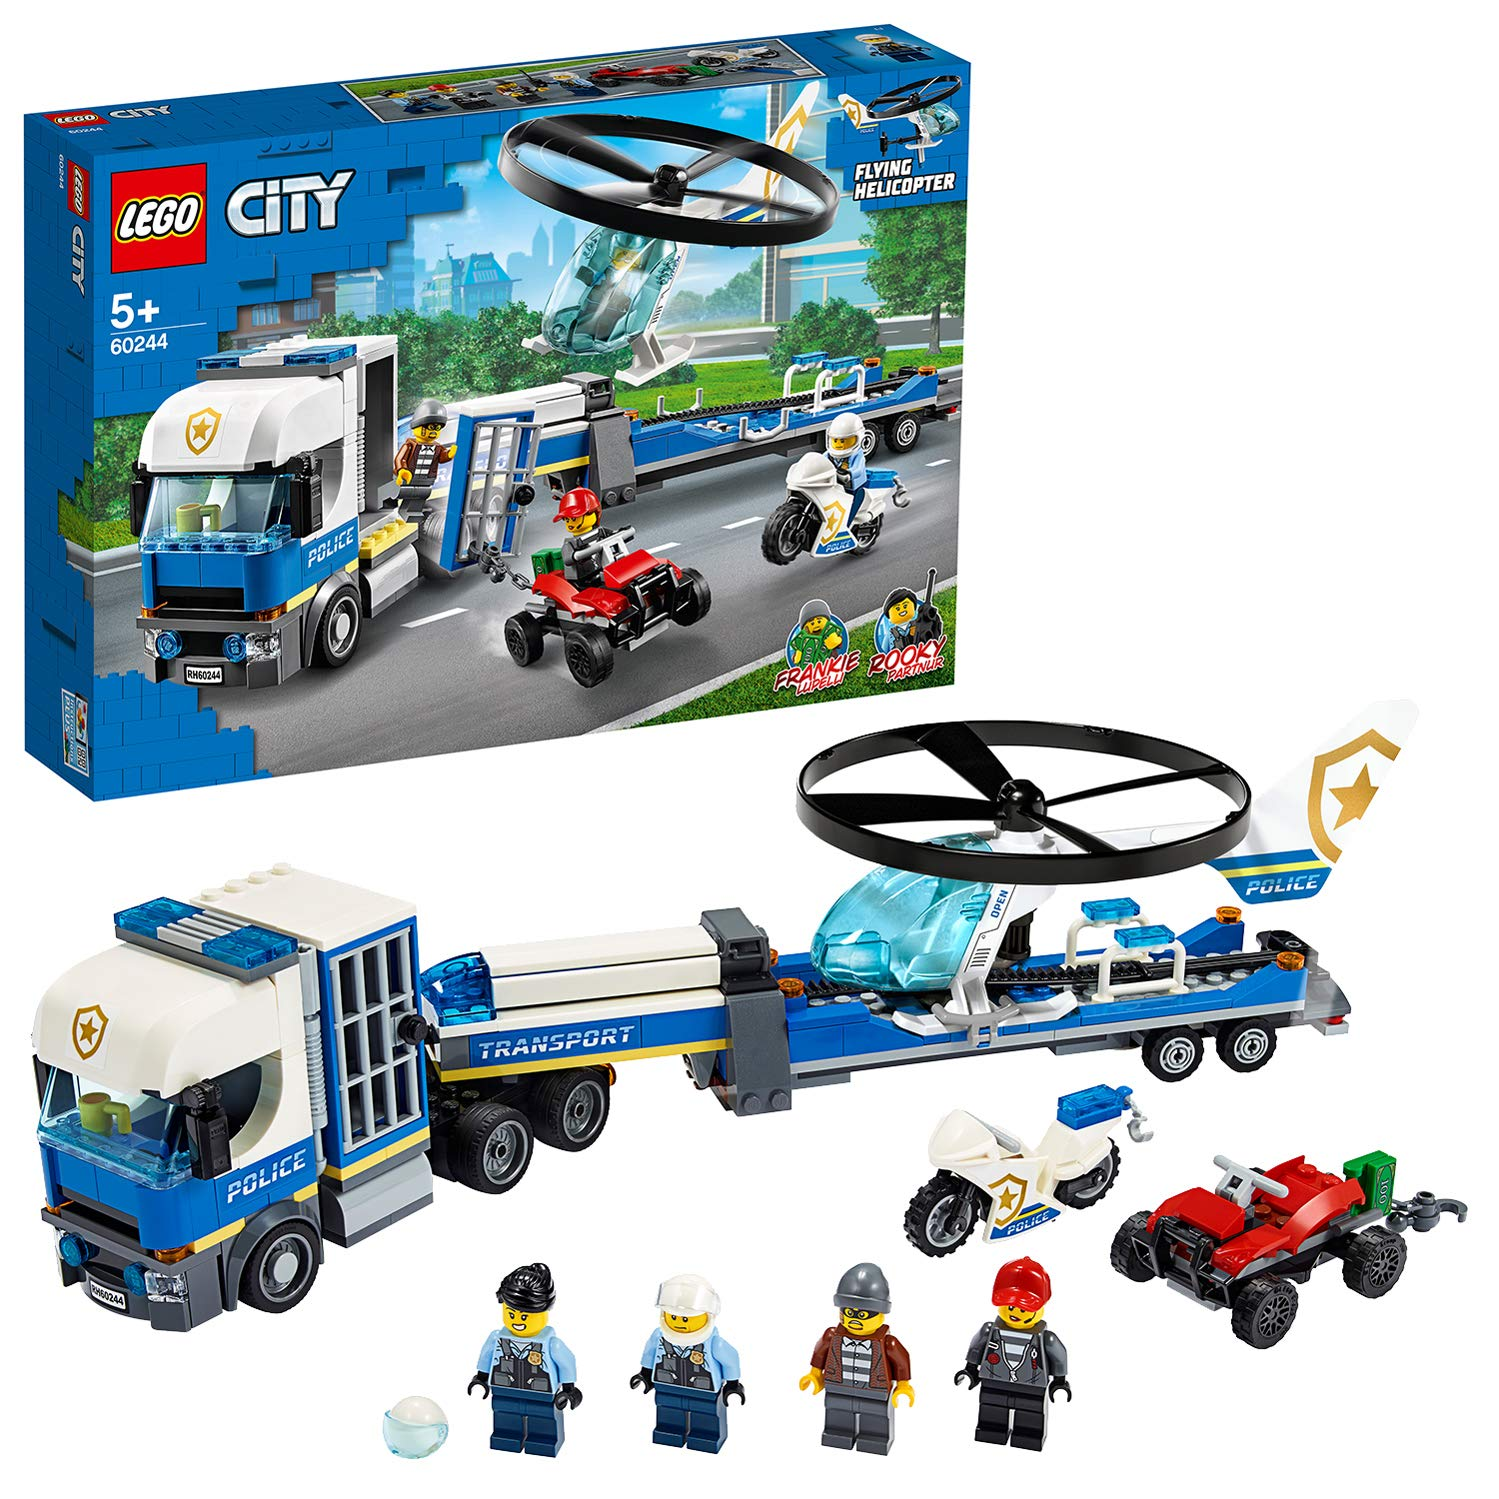 Motorbike and LEGO City 60243 Police Helicopter Chase Toy with ATV Quad Bike